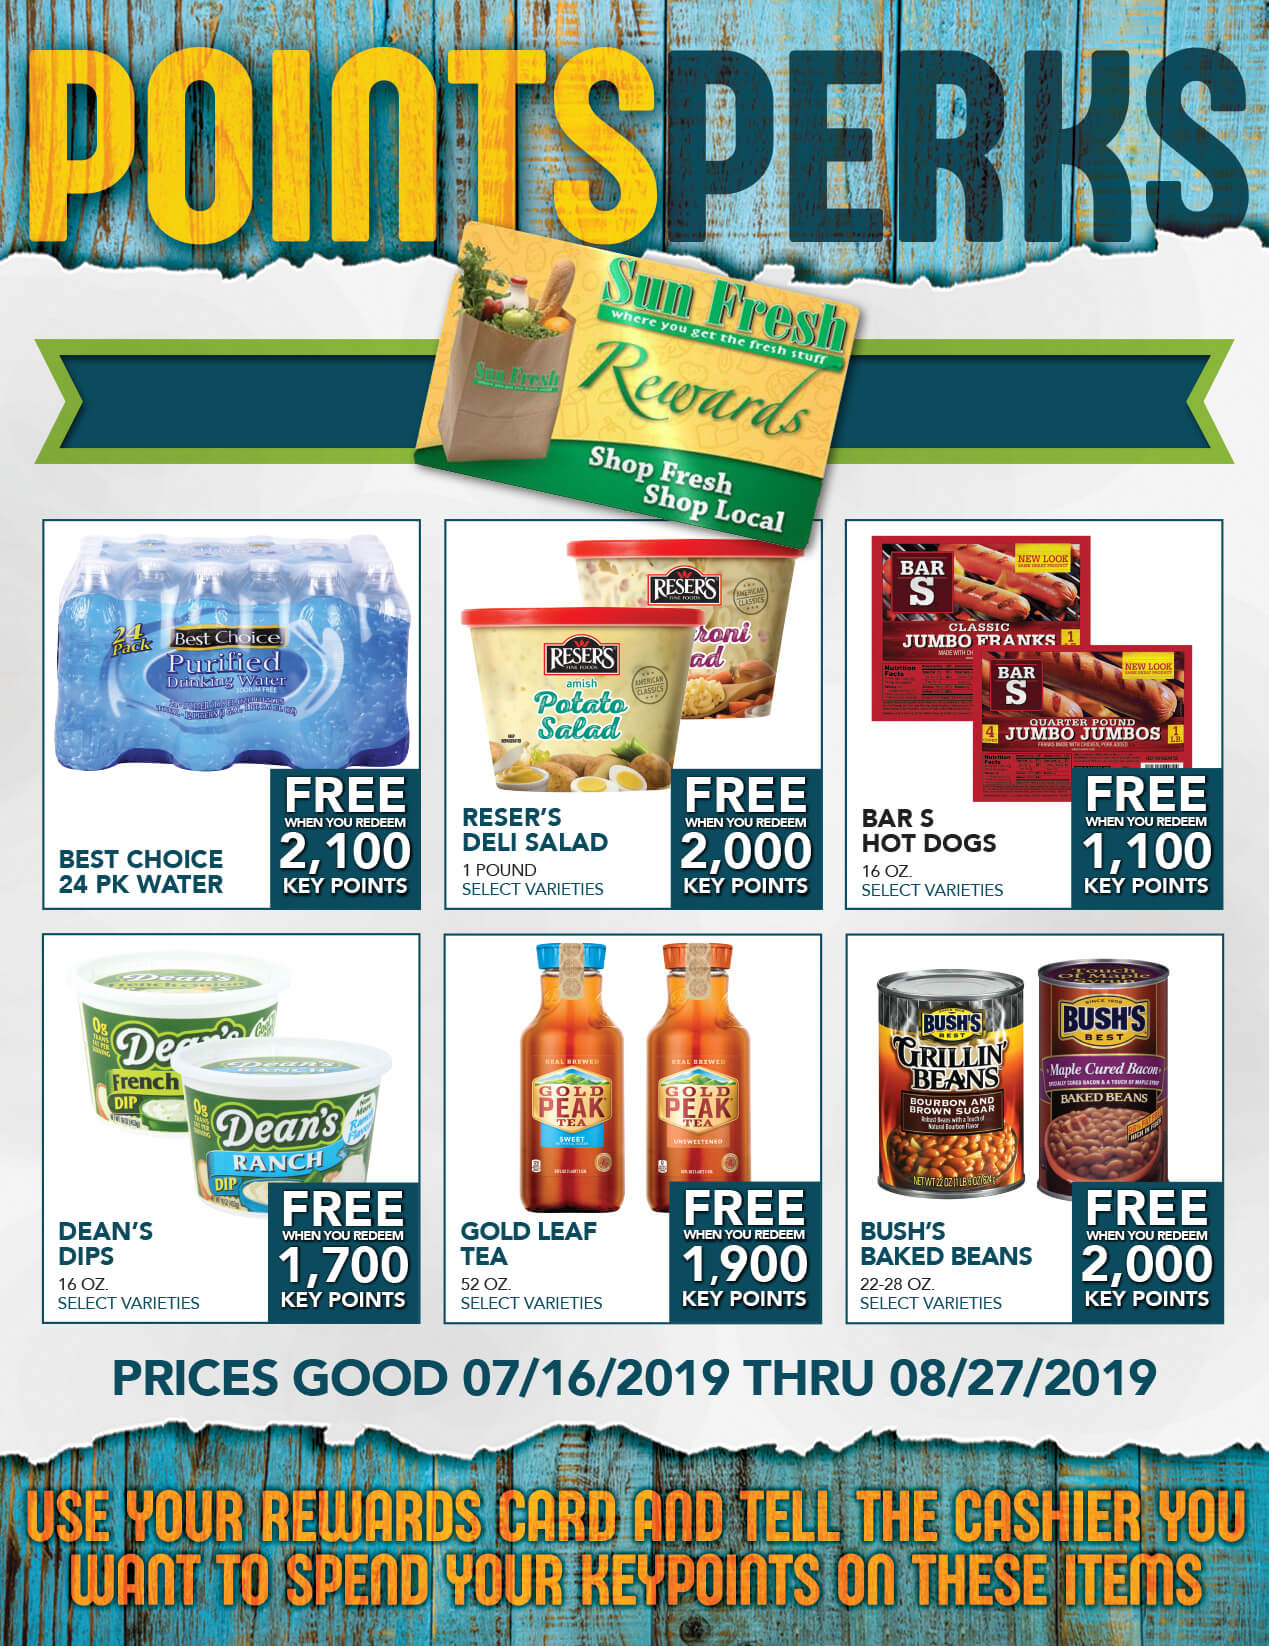 Points Perks: Prices good through 7/15/19 - Use your rewards card and tell teh cashier you want to spend your keypoints on these items.